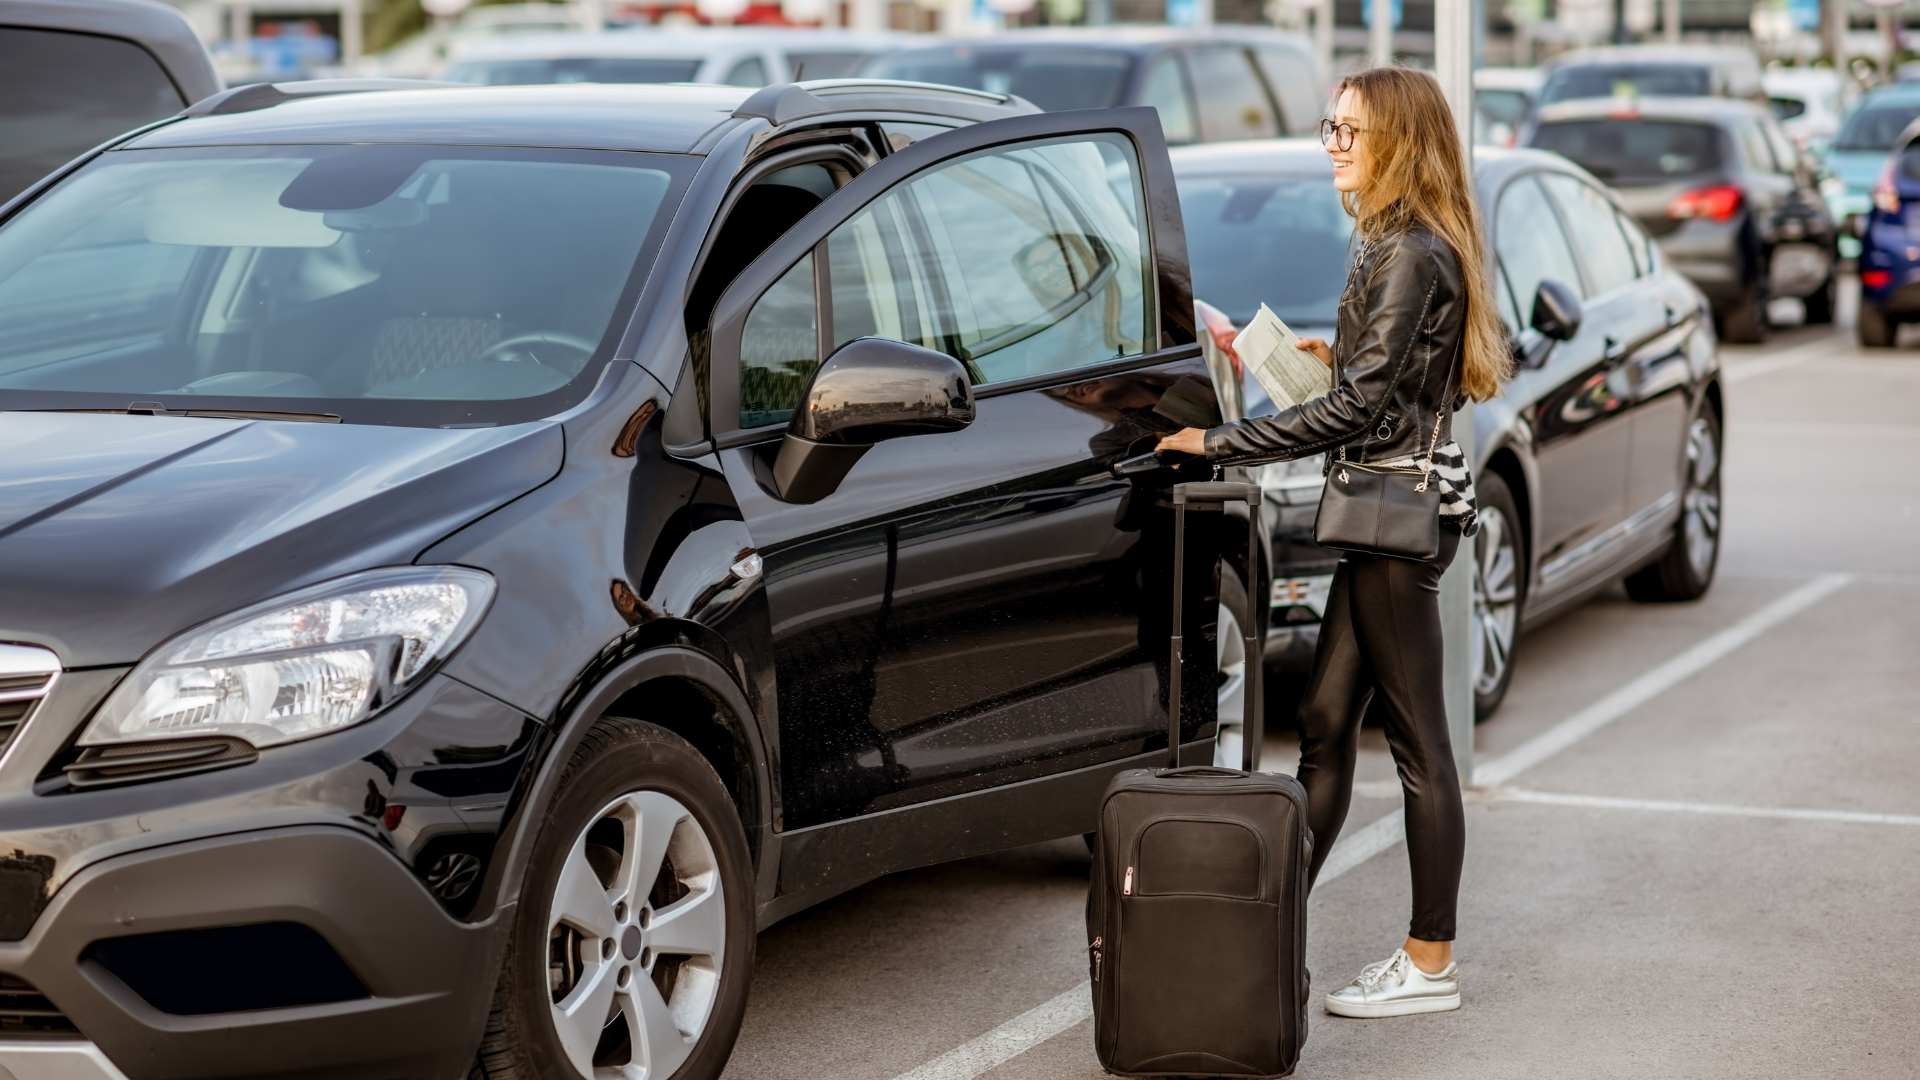 Renting a car in Japan How to rent a car & everything you need to know